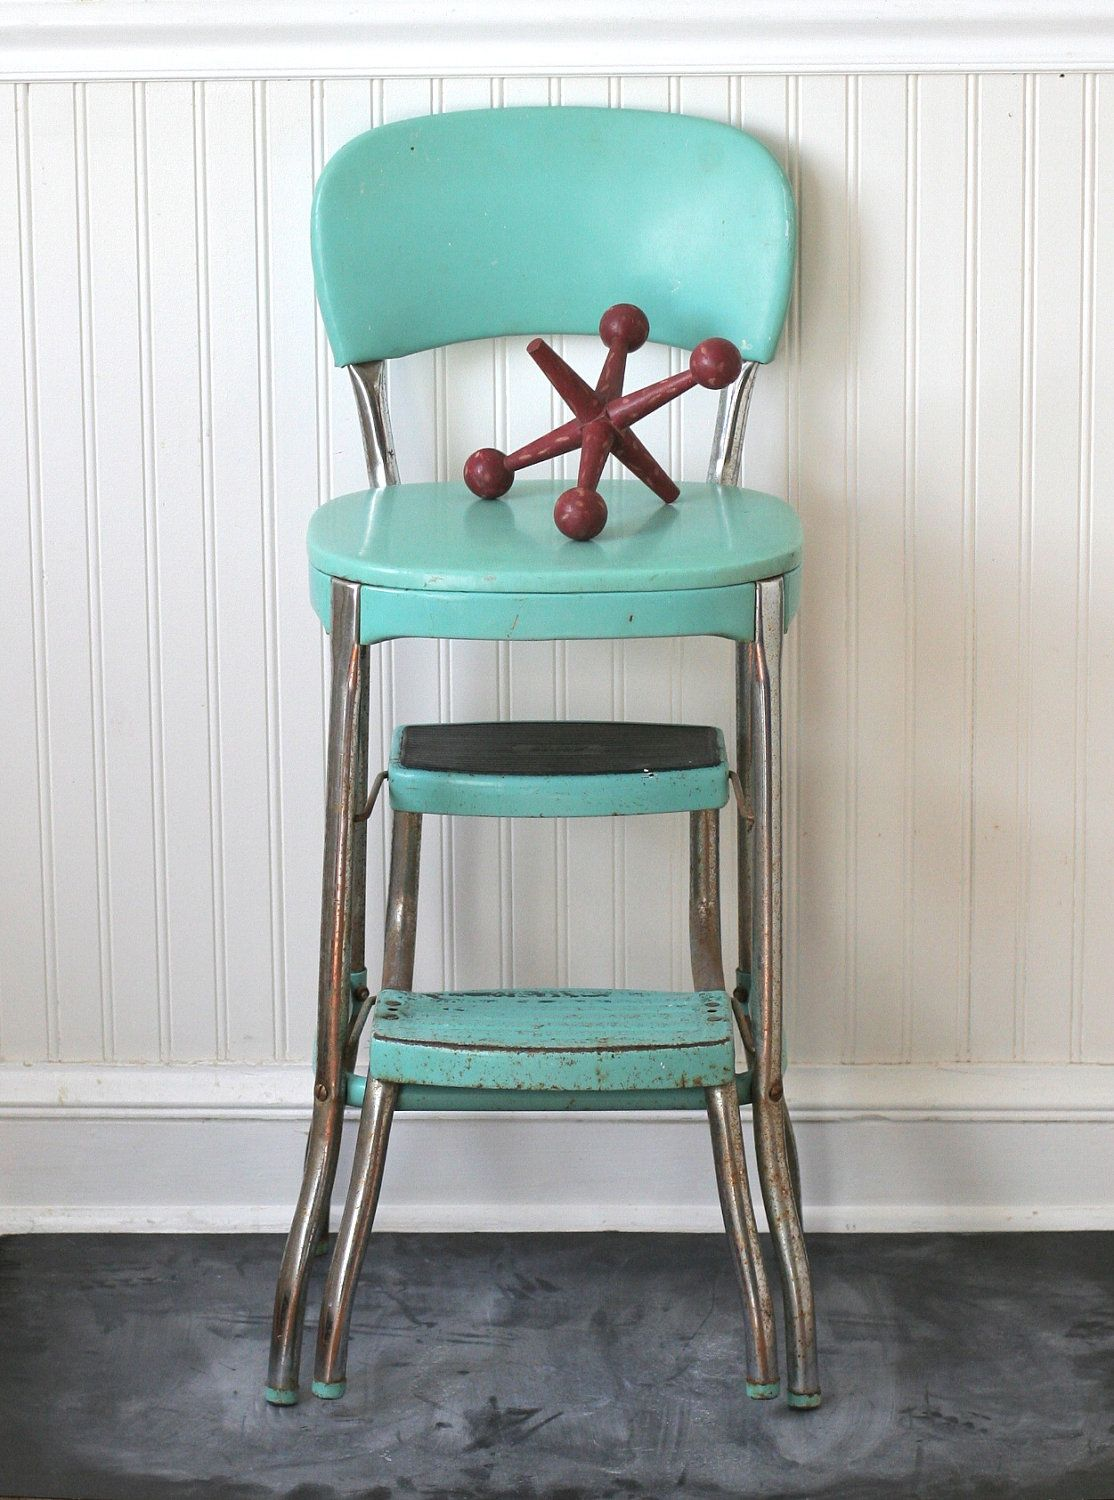 Vintage folding step stool chair - Circa 1950s Cosco Fold Out Step Stool Chair Aqua Turquoise Seafoam 68 00 Via Etsy